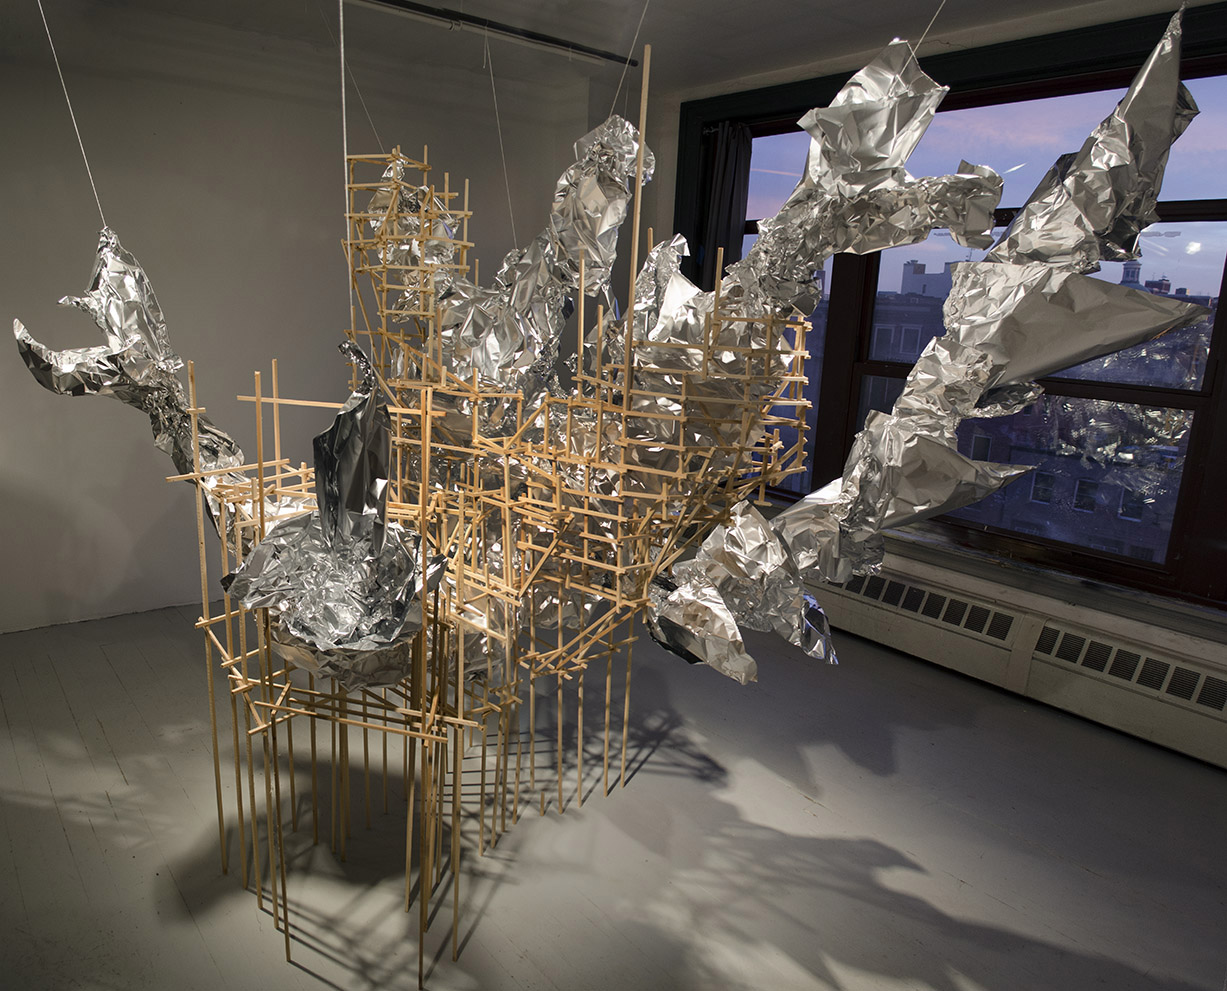 Scaffolder, 2013, aluminum foil, pine, hot glue, cotton string